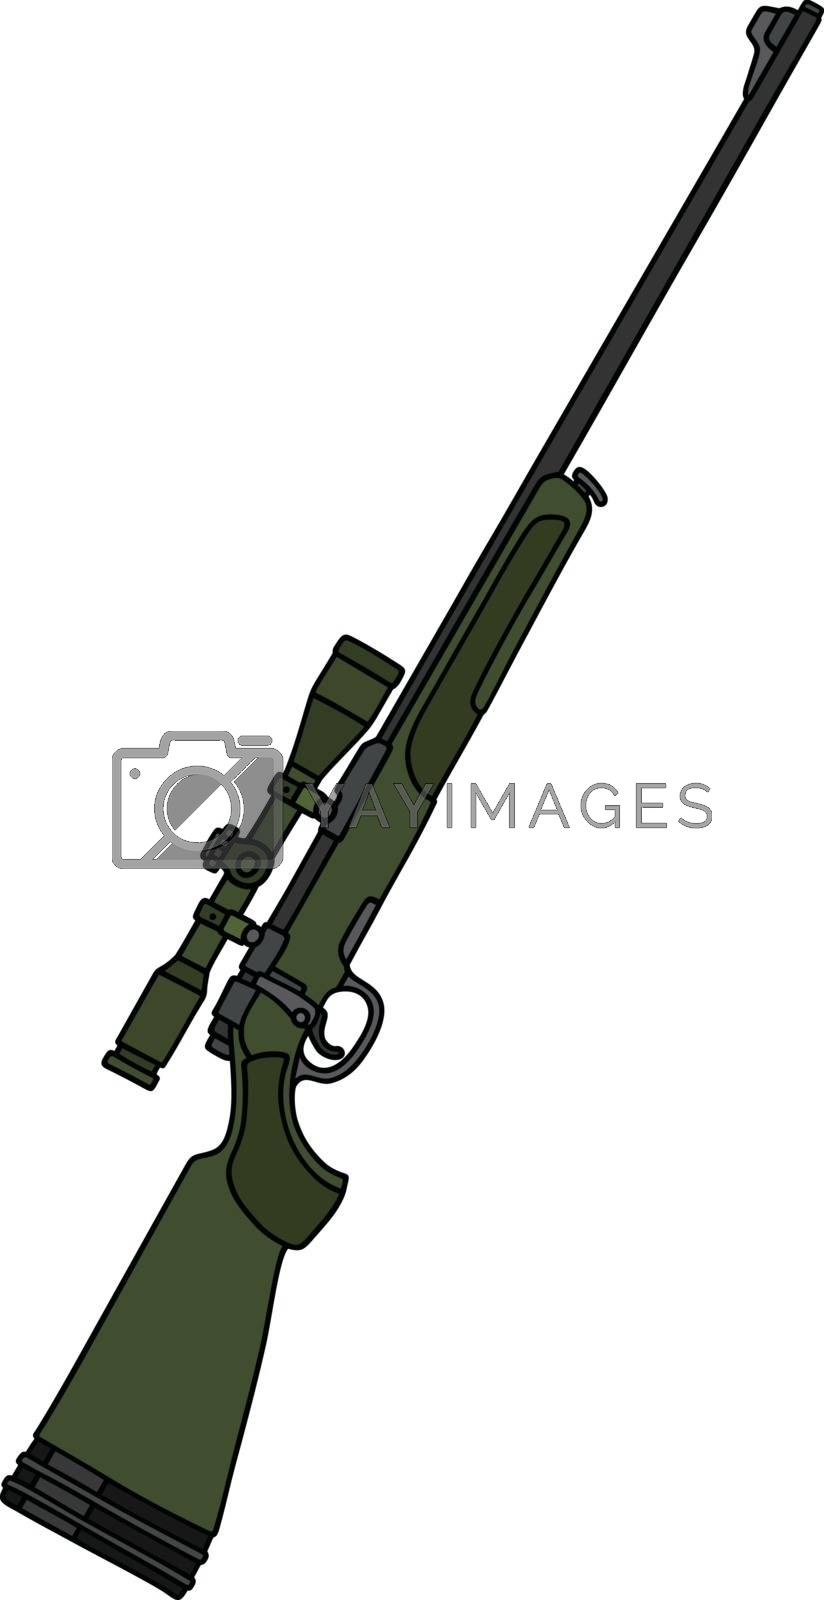 Royalty free image of Green hunting rifle with a telescope by vostal